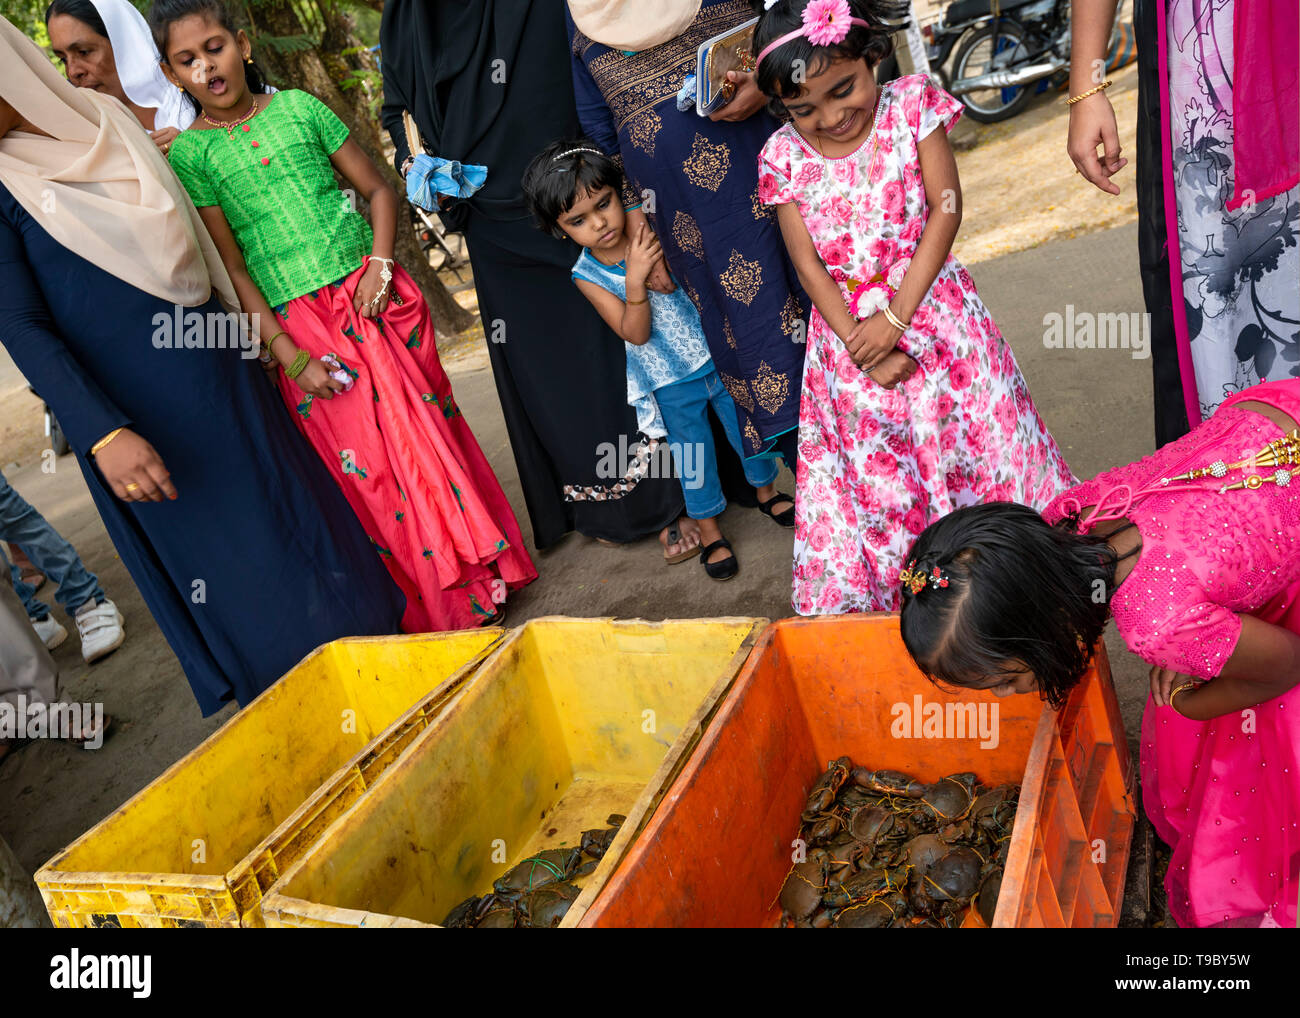 Horizontal view of children squirming at the fish market in Fort Kochi, India. Stock Photo